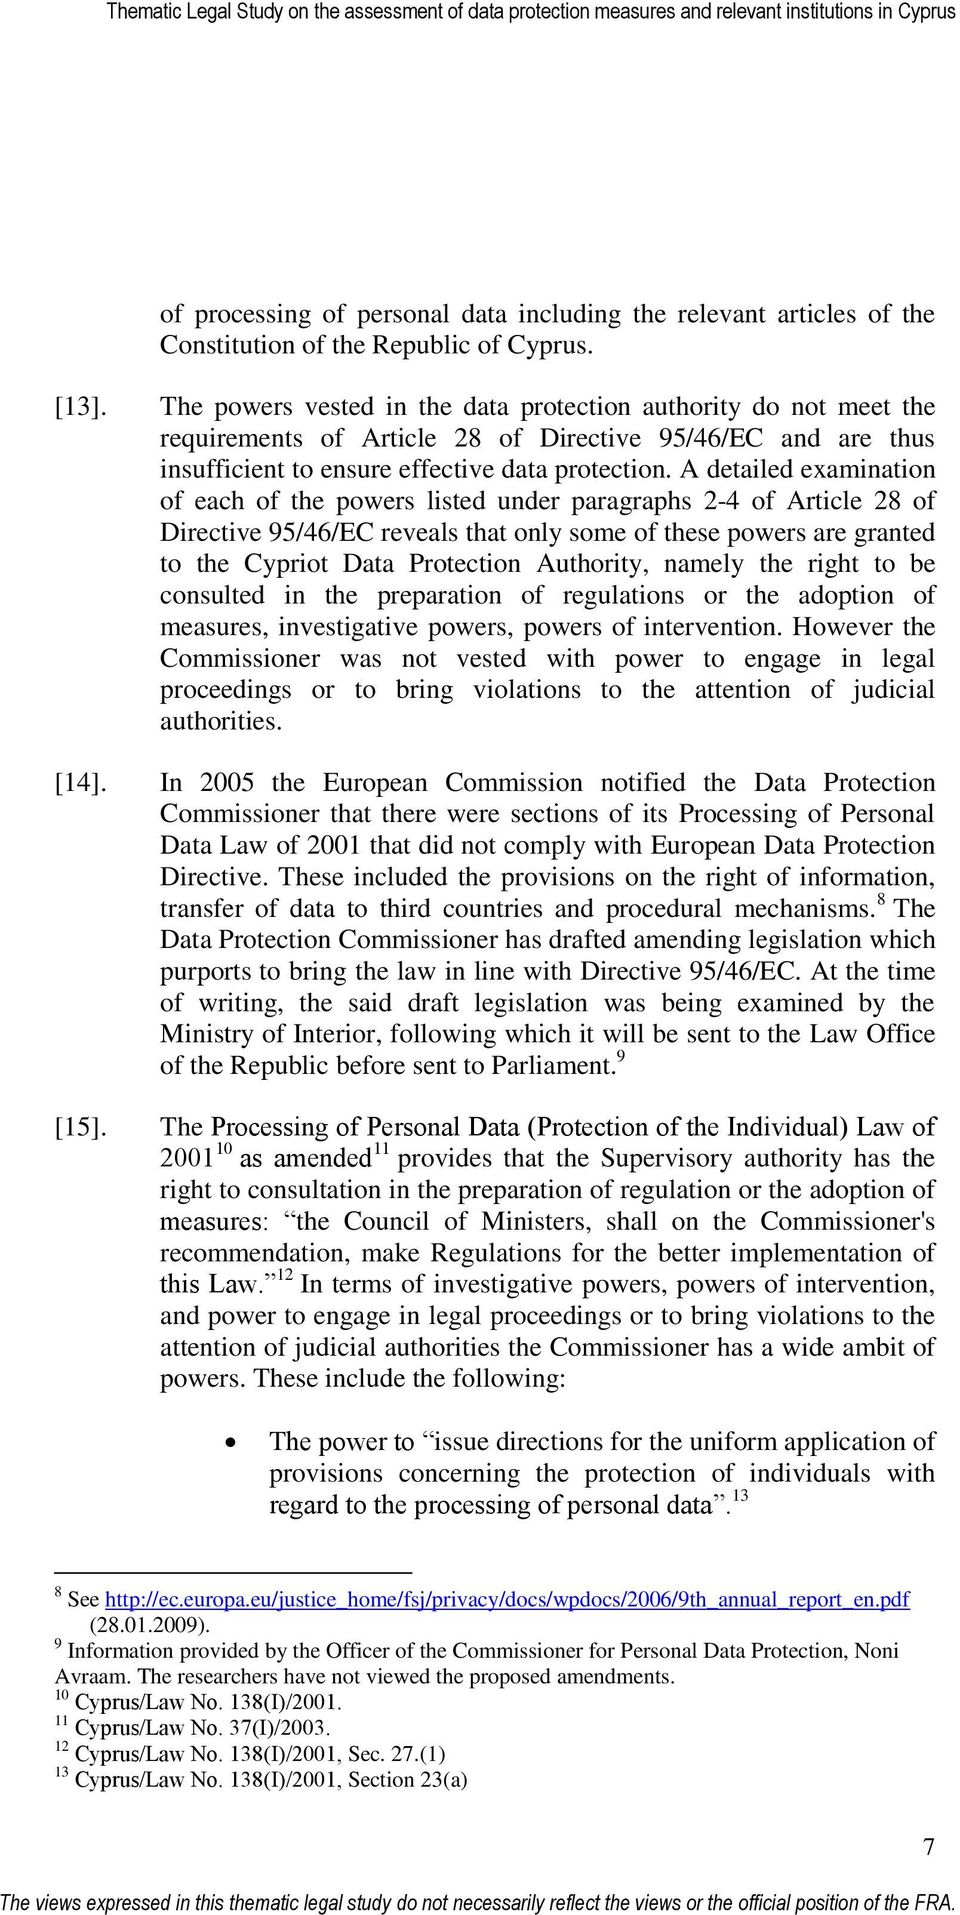 A detailed examination of each of the powers listed under paragraphs 2-4 of Article 28 of Directive 95/46/EC reveals that only some of these powers are granted to the Cypriot Data Protection